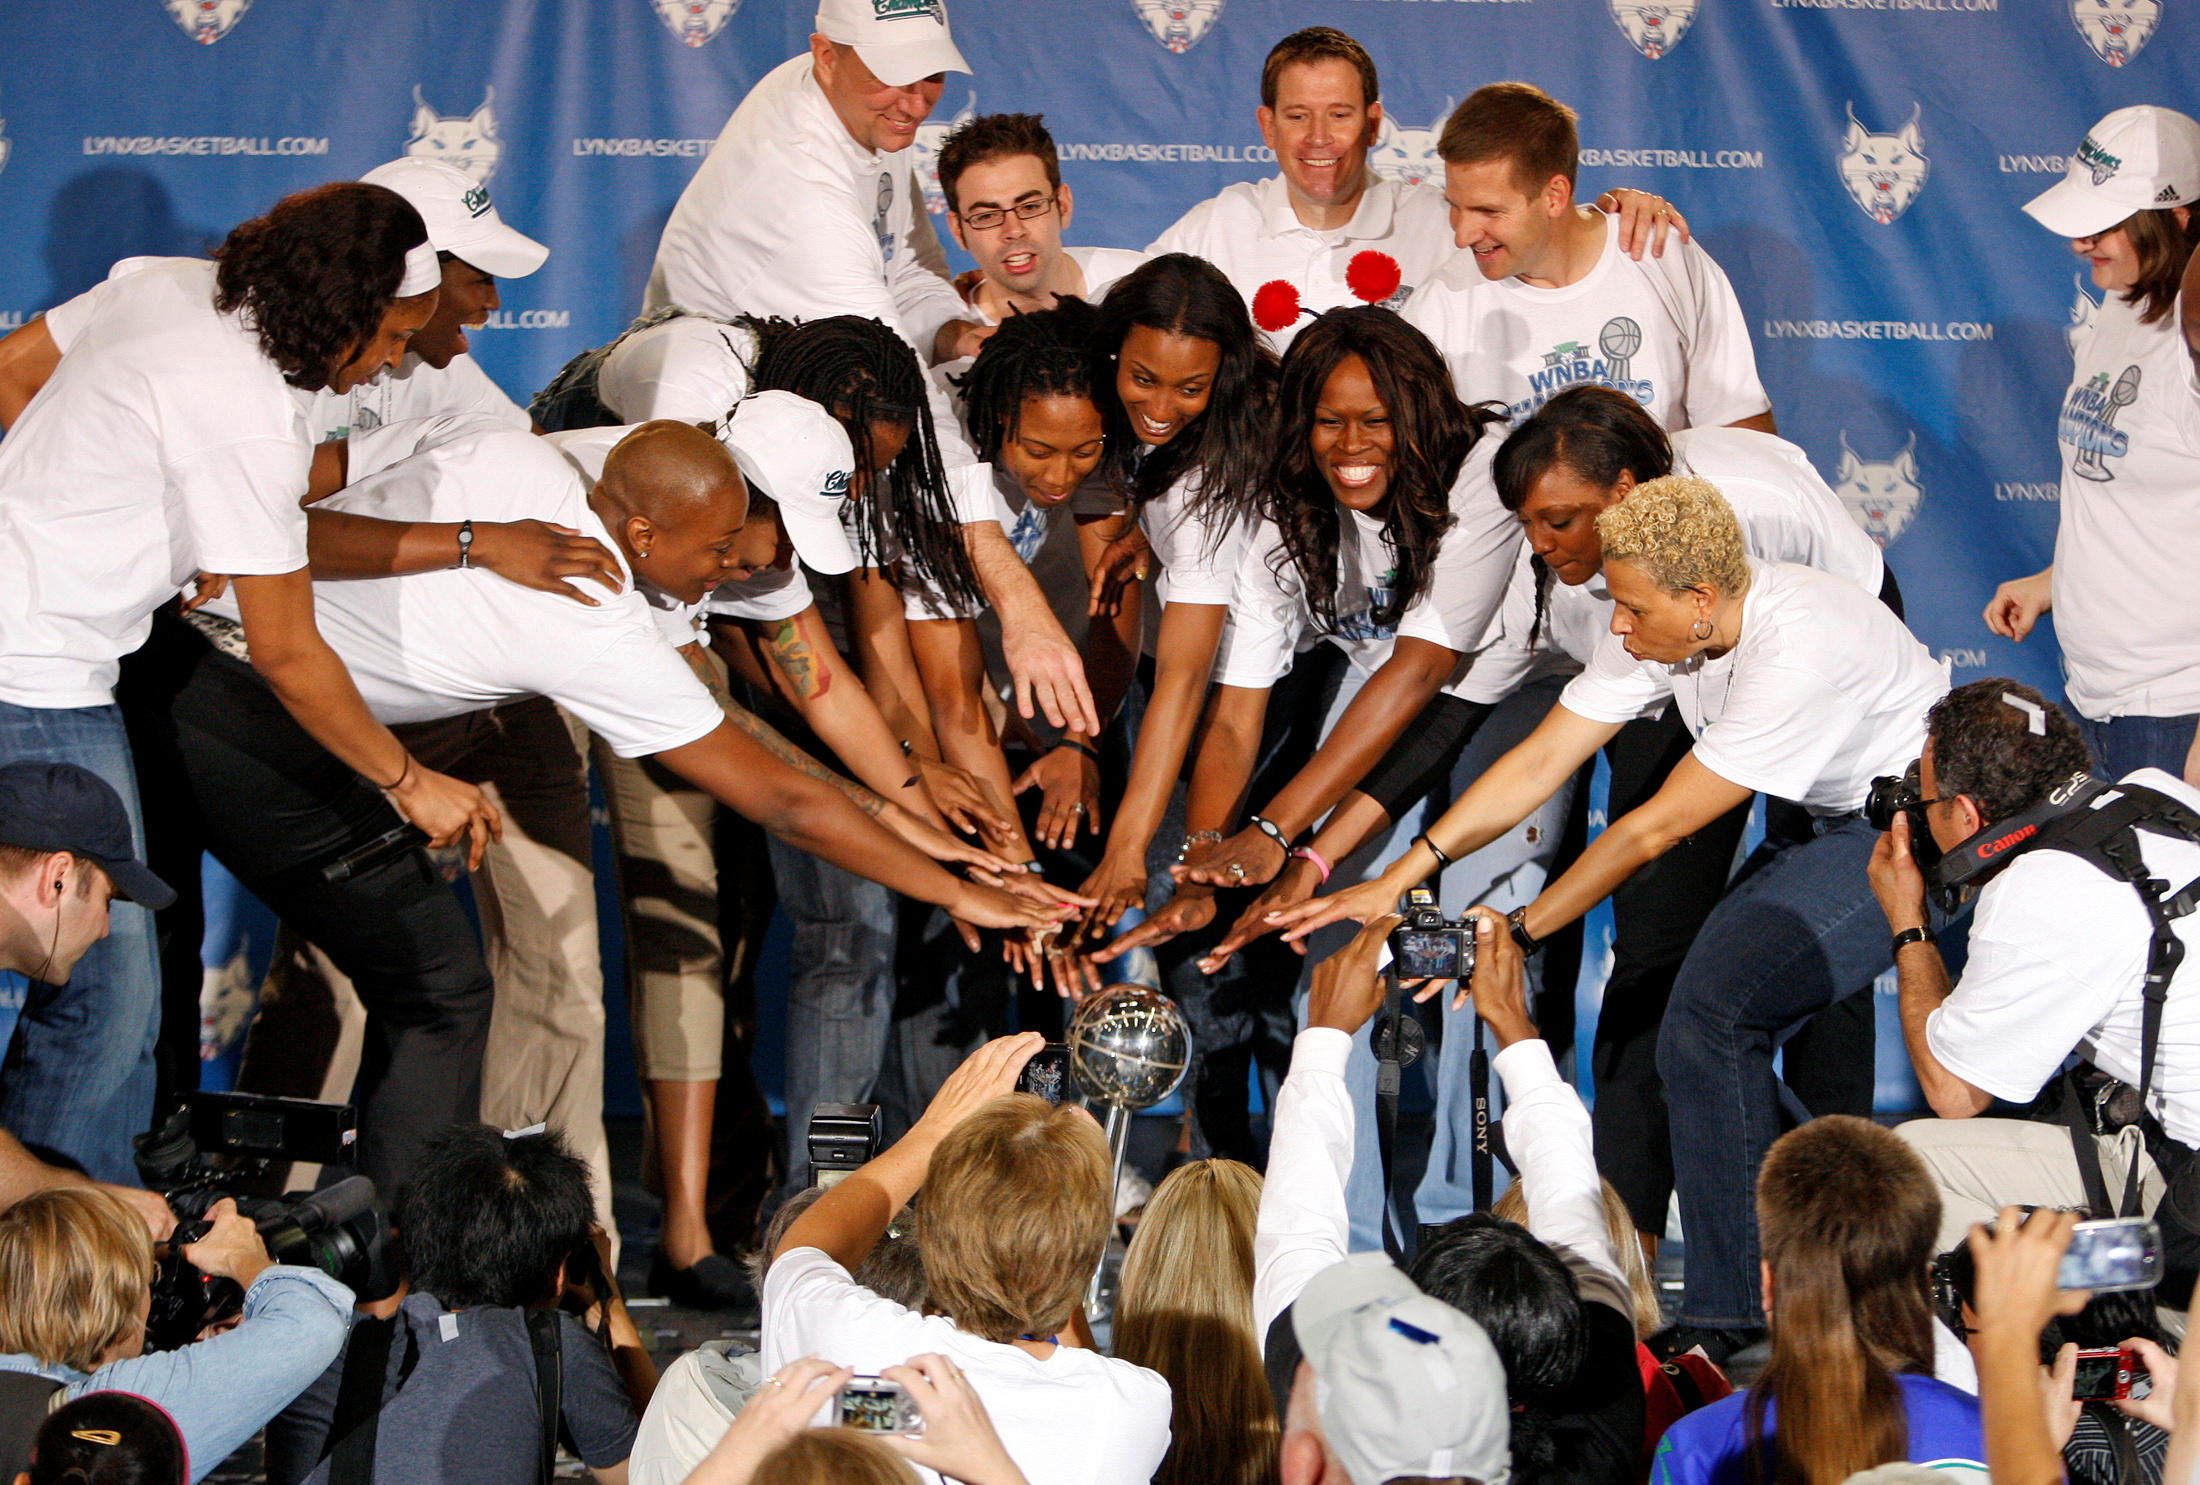 Members of the Minnesota Lynx basketball team motion to the championship trophy during a celebration of their WNBA Championship title in the Target Center in Minneapolis, October 11, 2011.       REUTERS/Eric Miller/File Photo